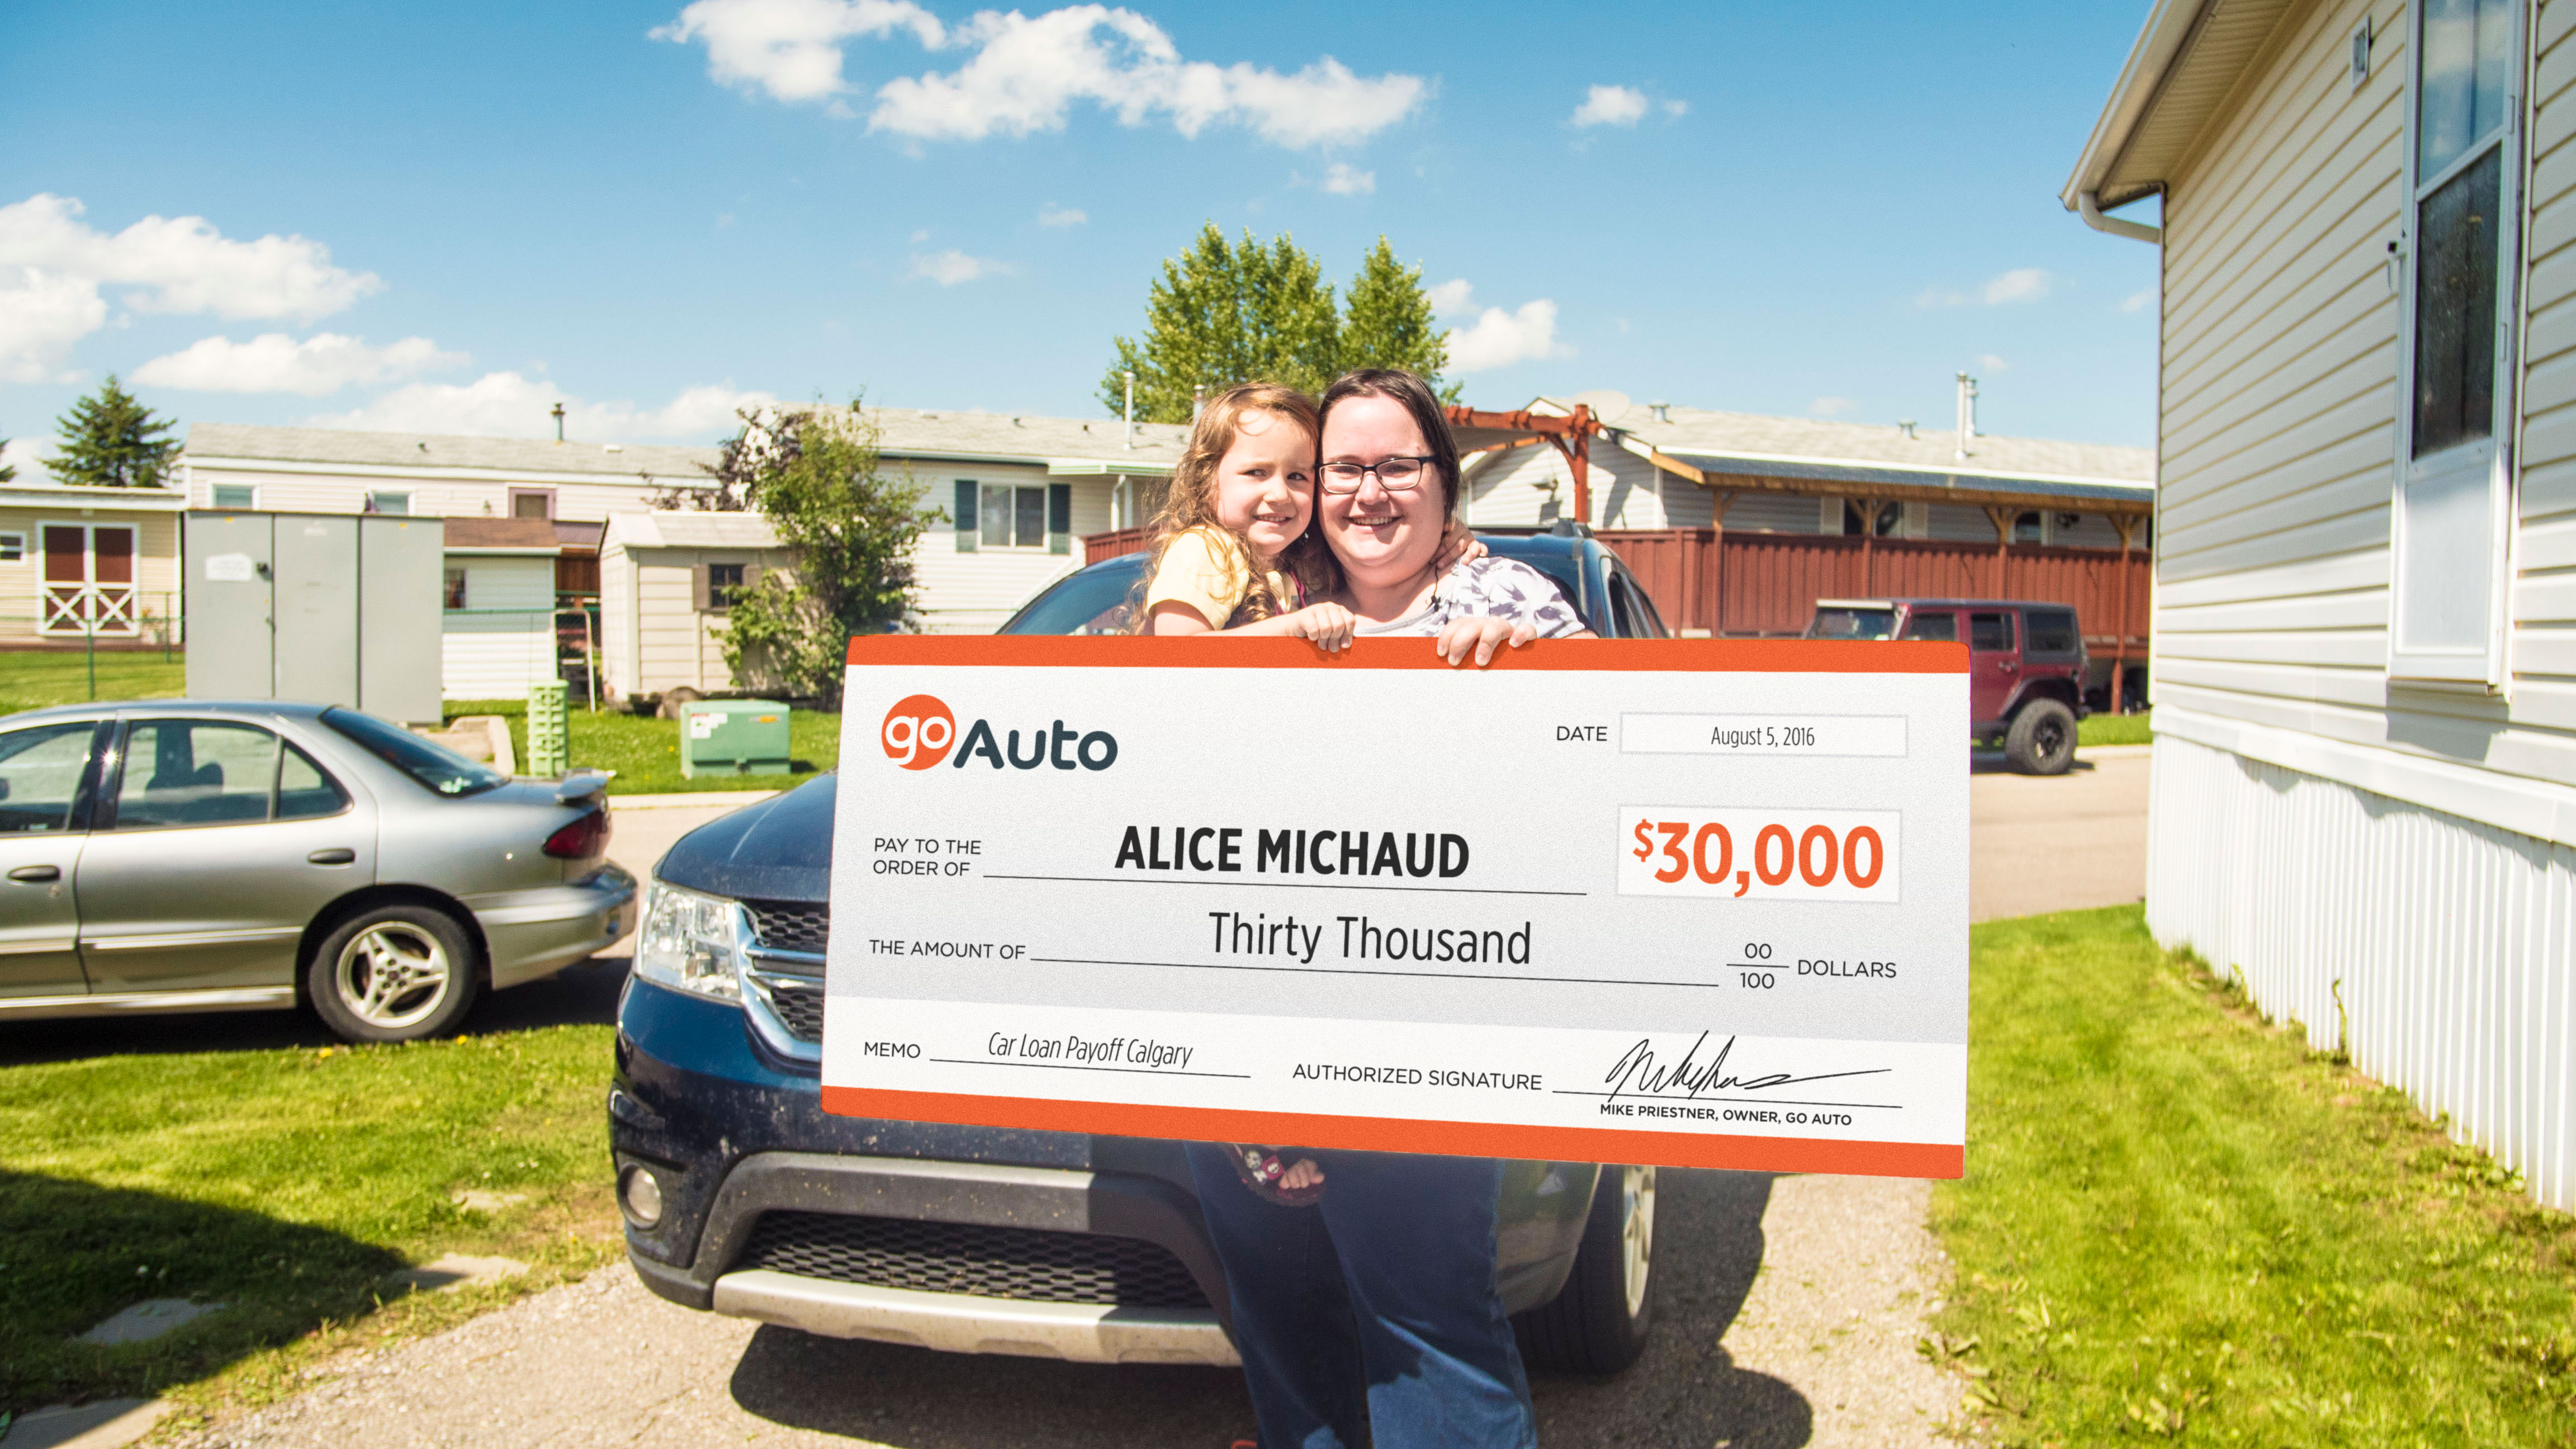 Calgary s Alice Michaud Wins $30 000 in Car Loan Payoff Contest